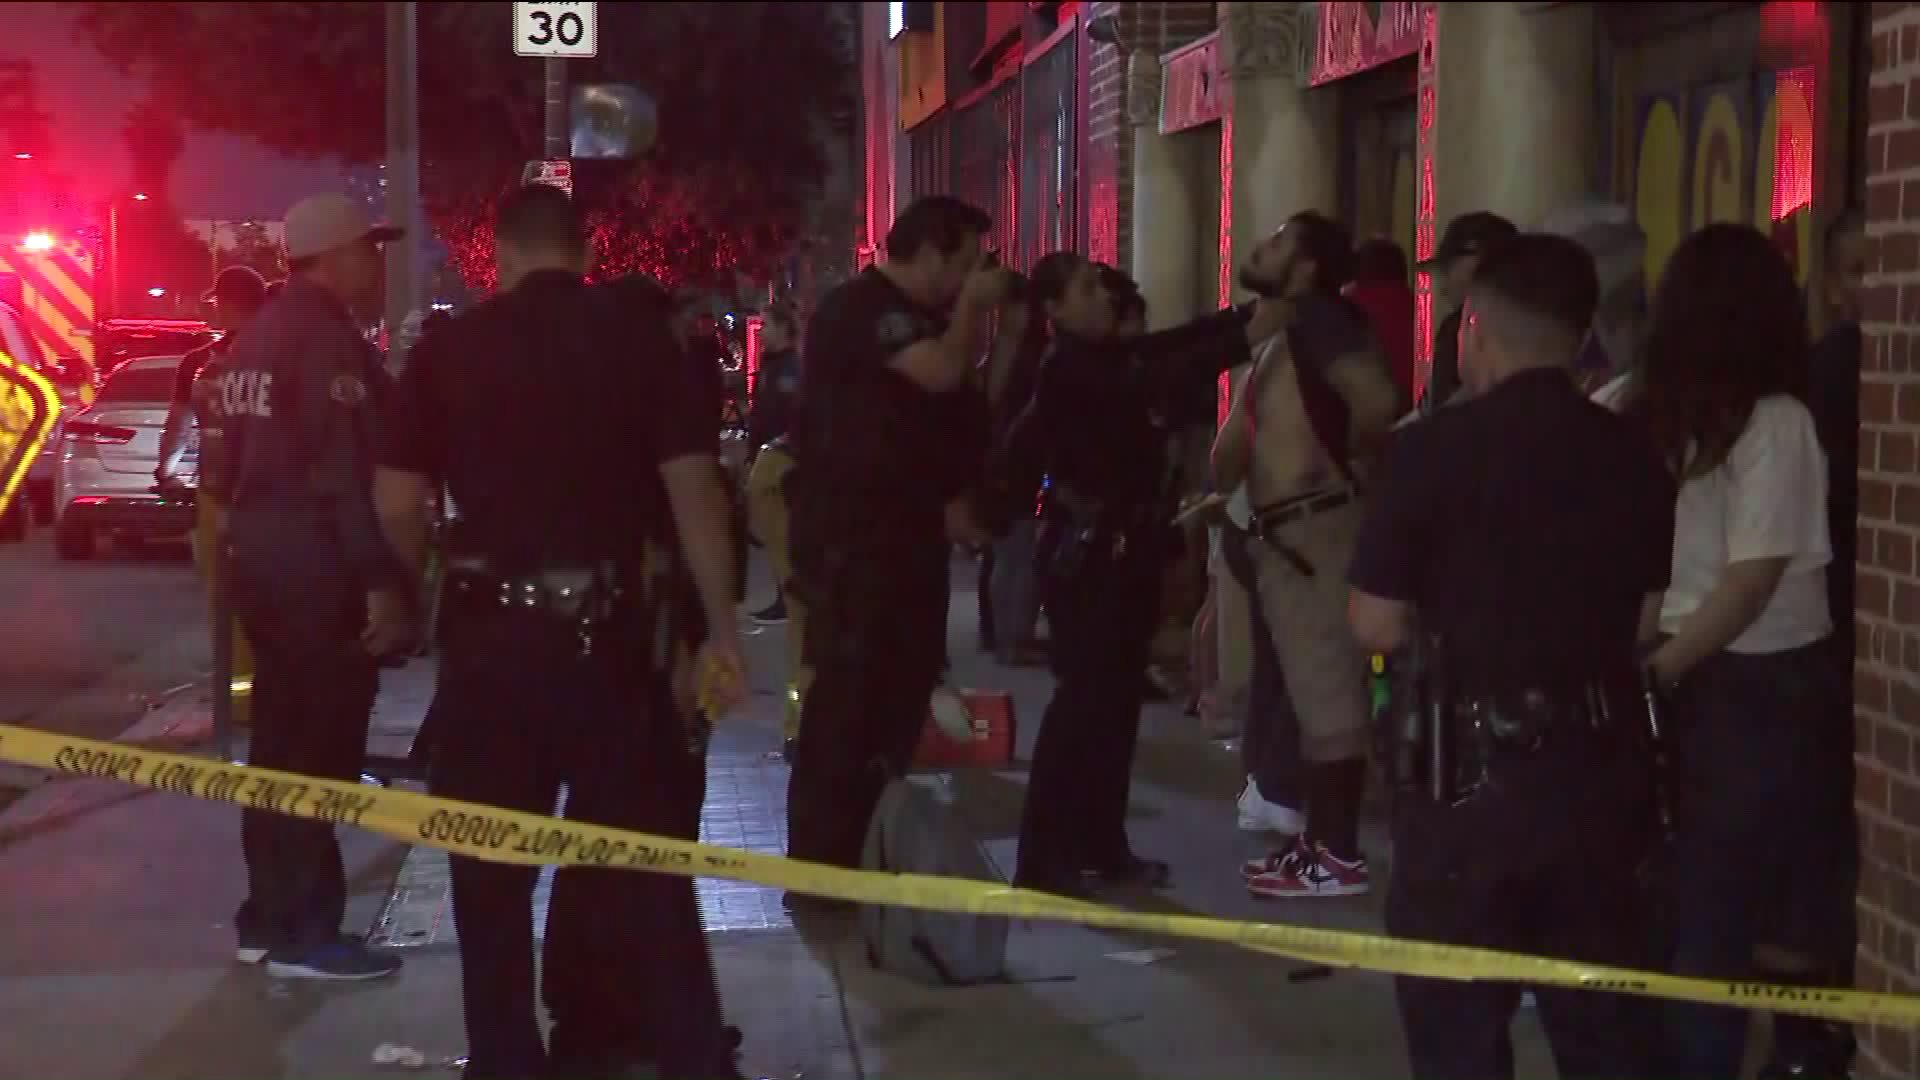 Los Angeles police raided an alleged gambling and drug operation in Koreatown on May 31, 2019. (Credit: KTLA)